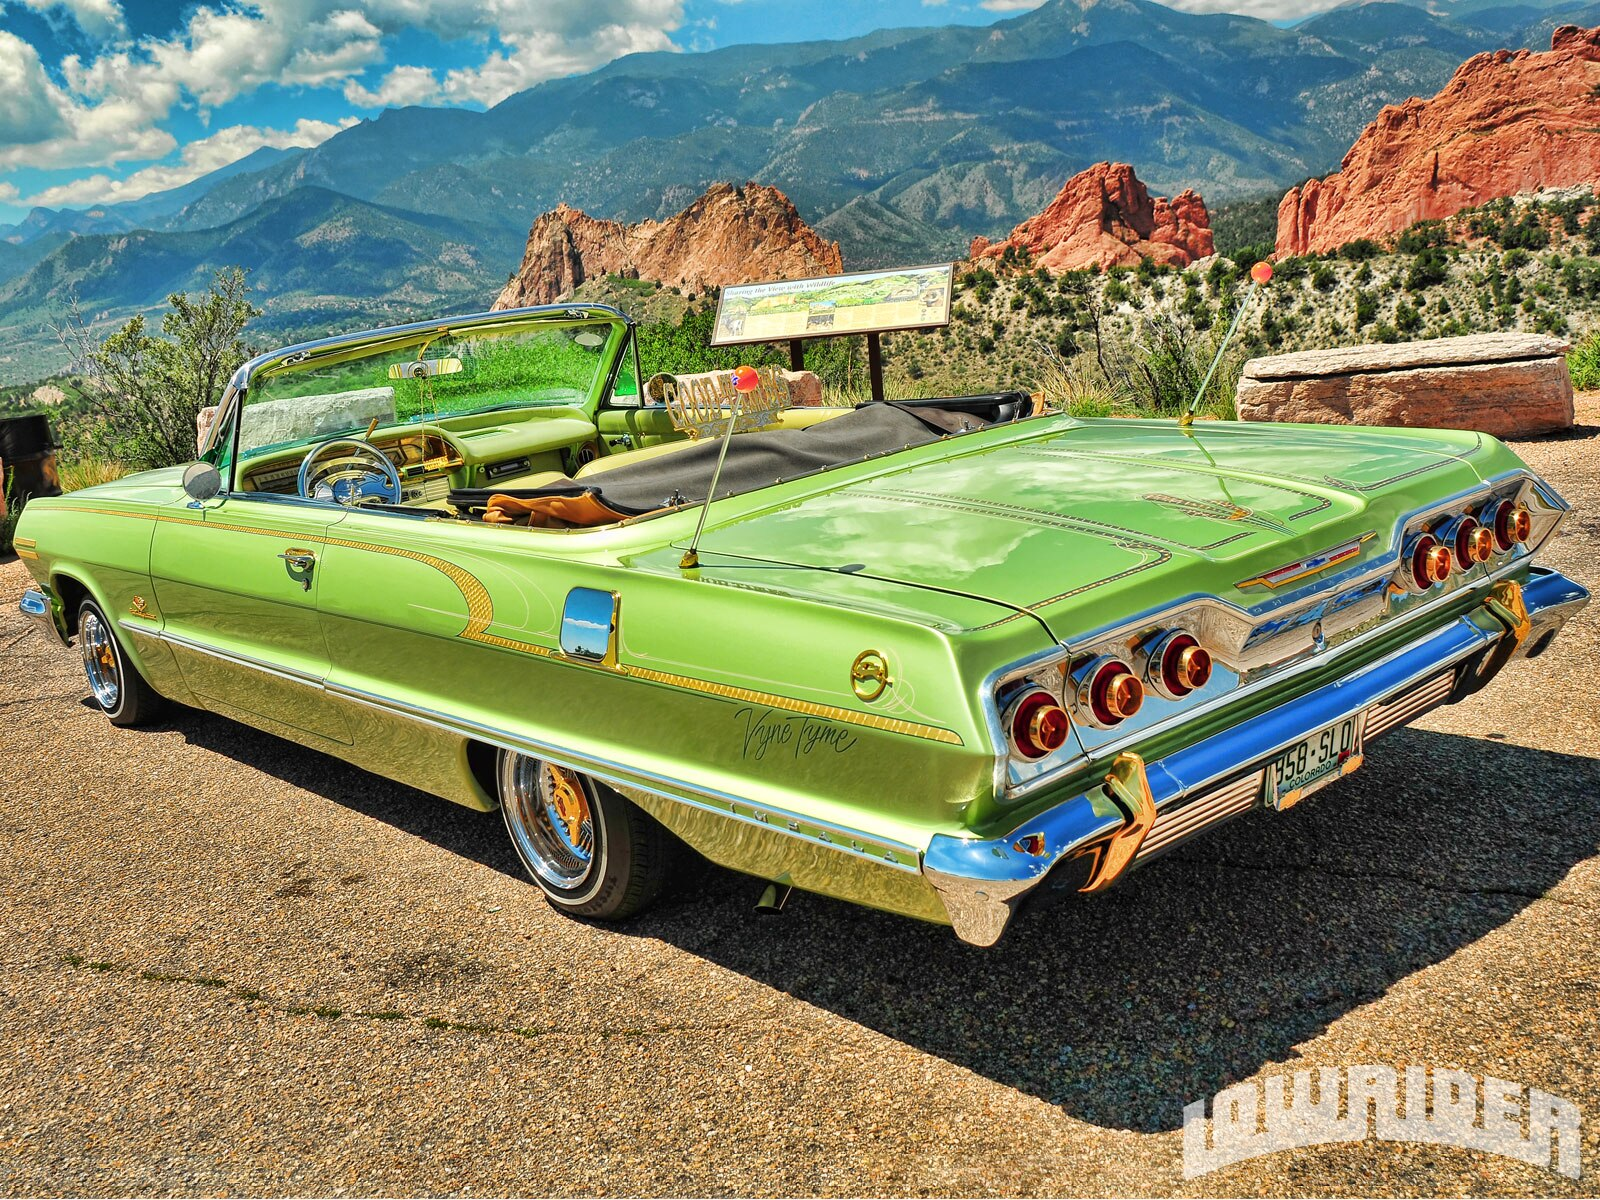 1210-lrmp-01-o-1963-chevrolet-impala-convertible-driver-side-rear-quarter-view1